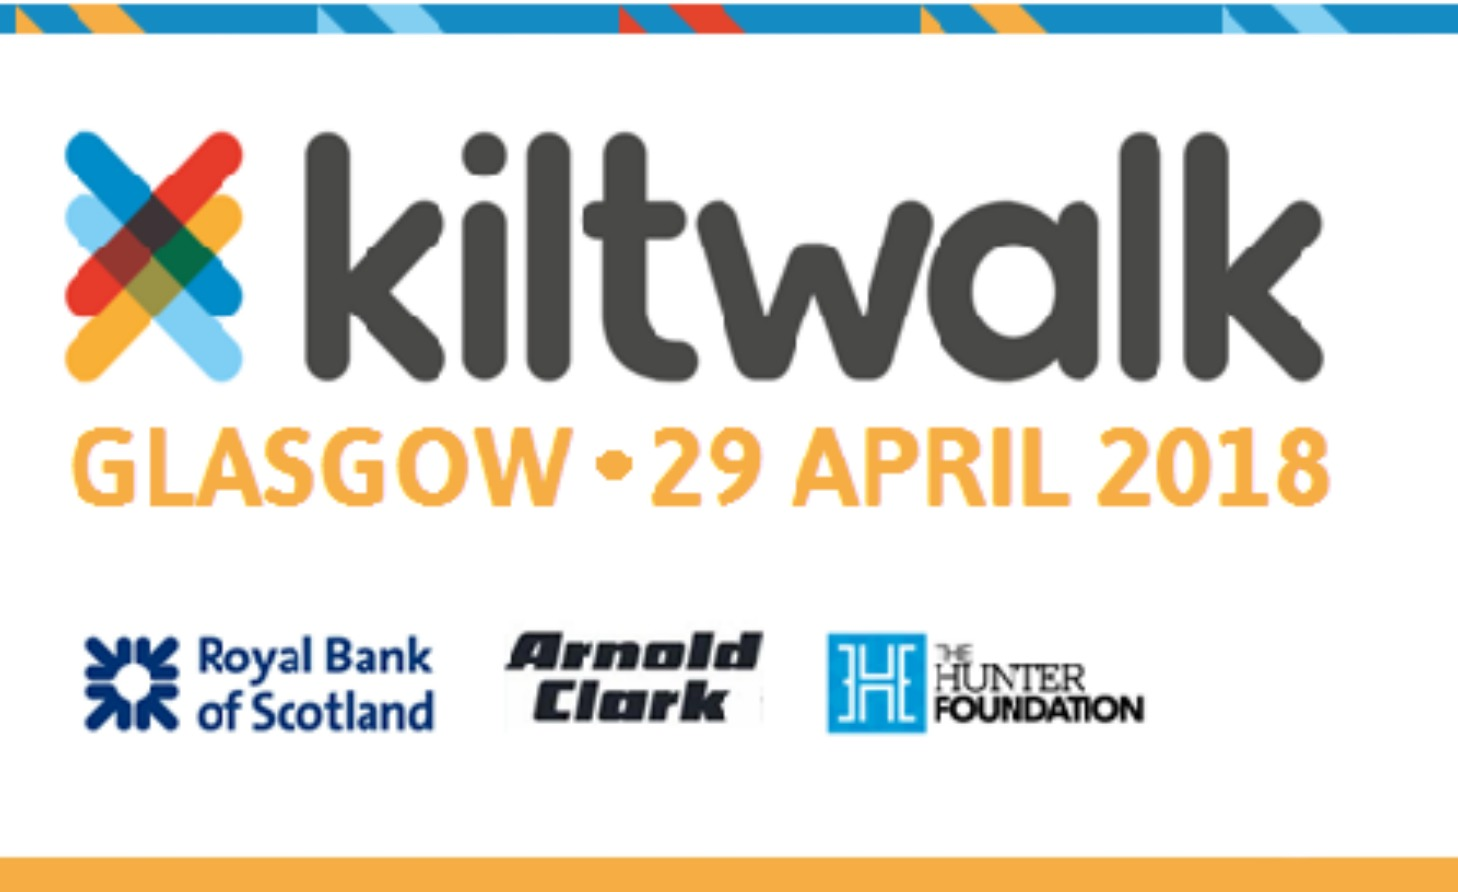 Glasgow Kiltwalk 2018